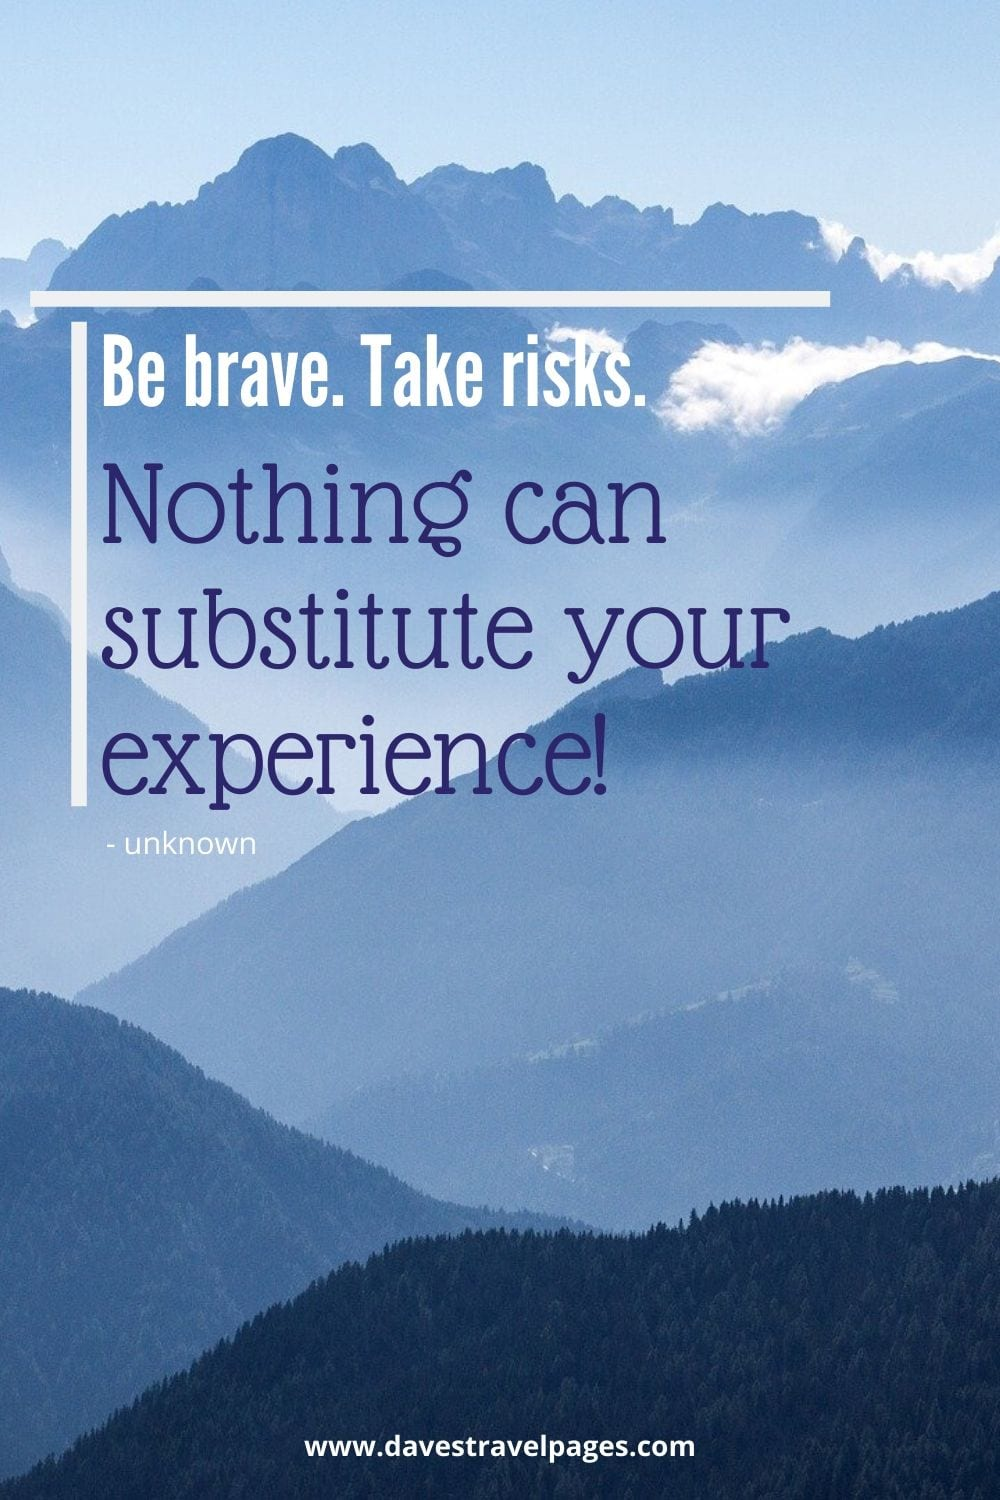 Inspirational Adventure and Travel Quote: Be brave. Take risks. Nothing can substitute your experience!